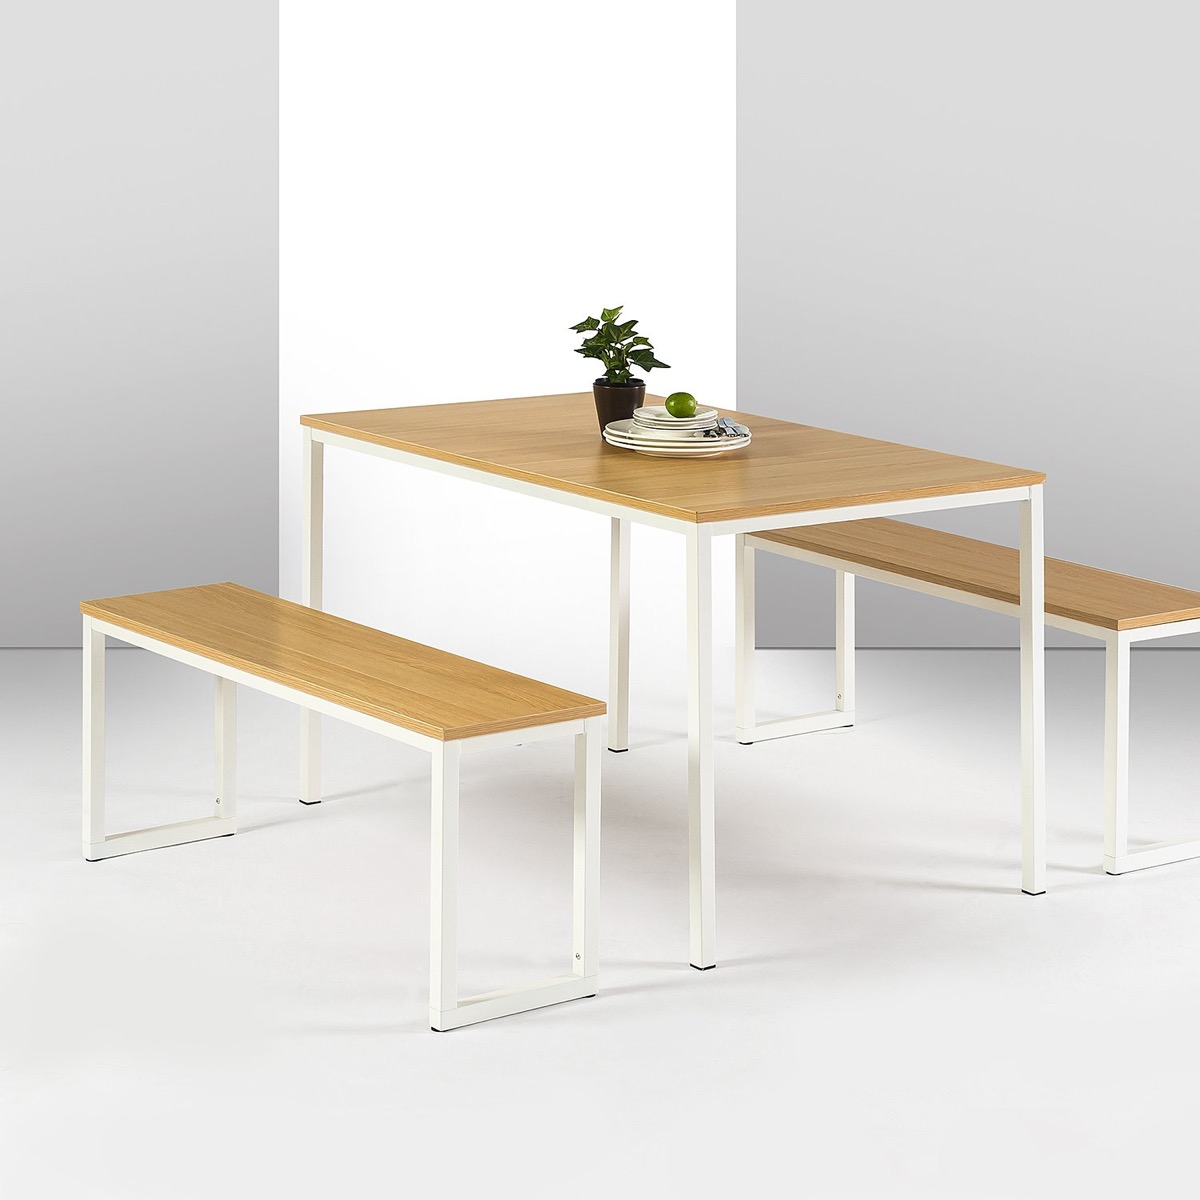 Modern-Minimalist-Dining-Bench-And-Table-Set-White-Metal-Legs-Wood-Seat